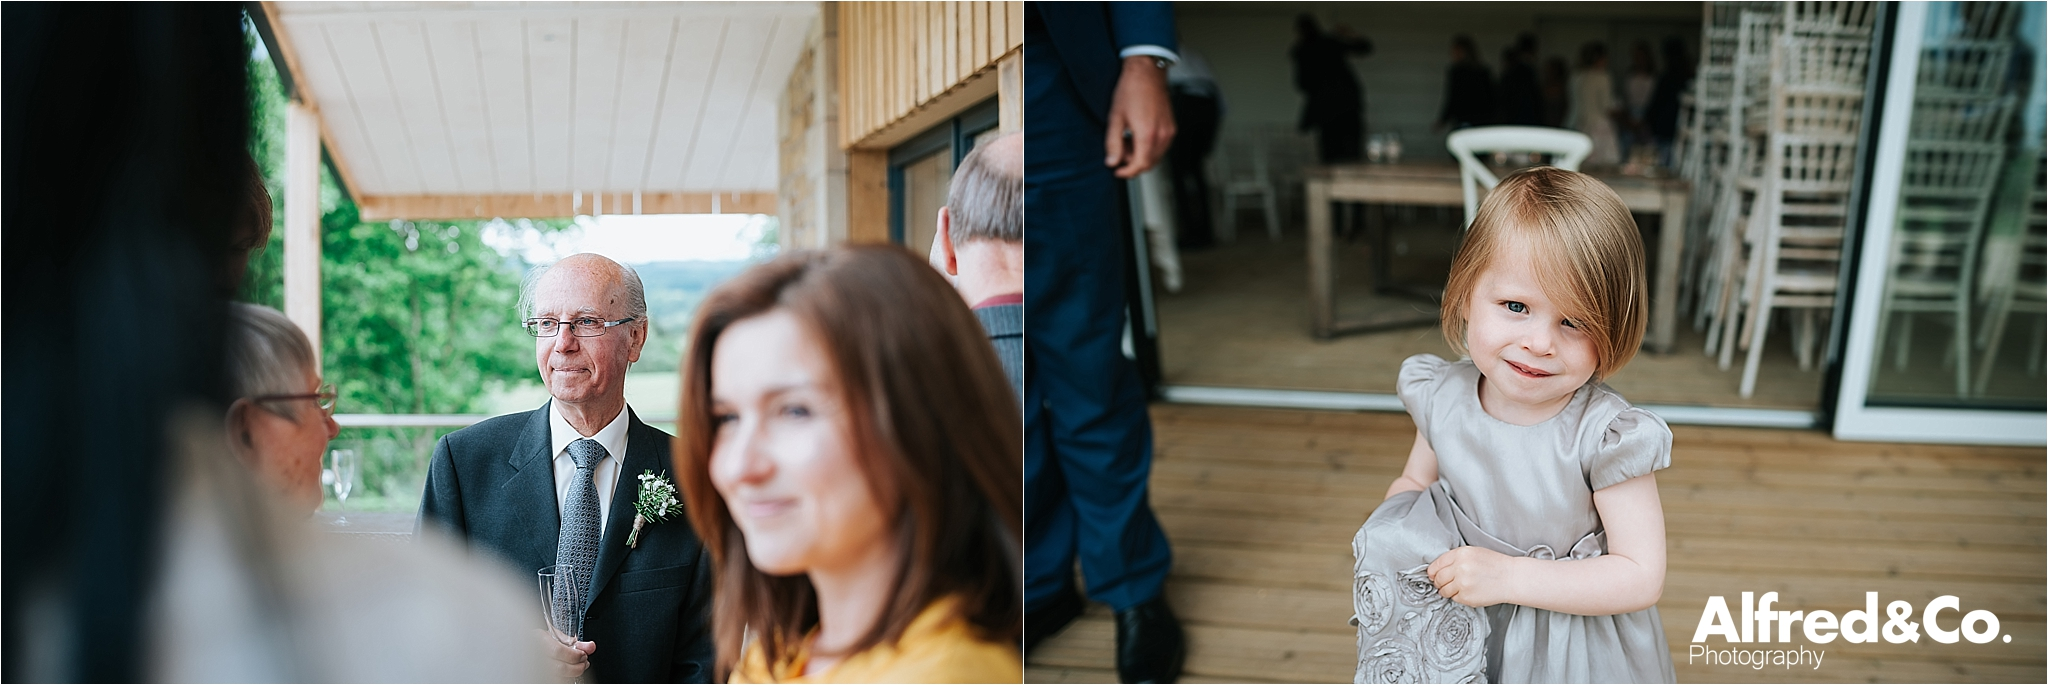 relaxed wedding photography in clitheroe lancashire